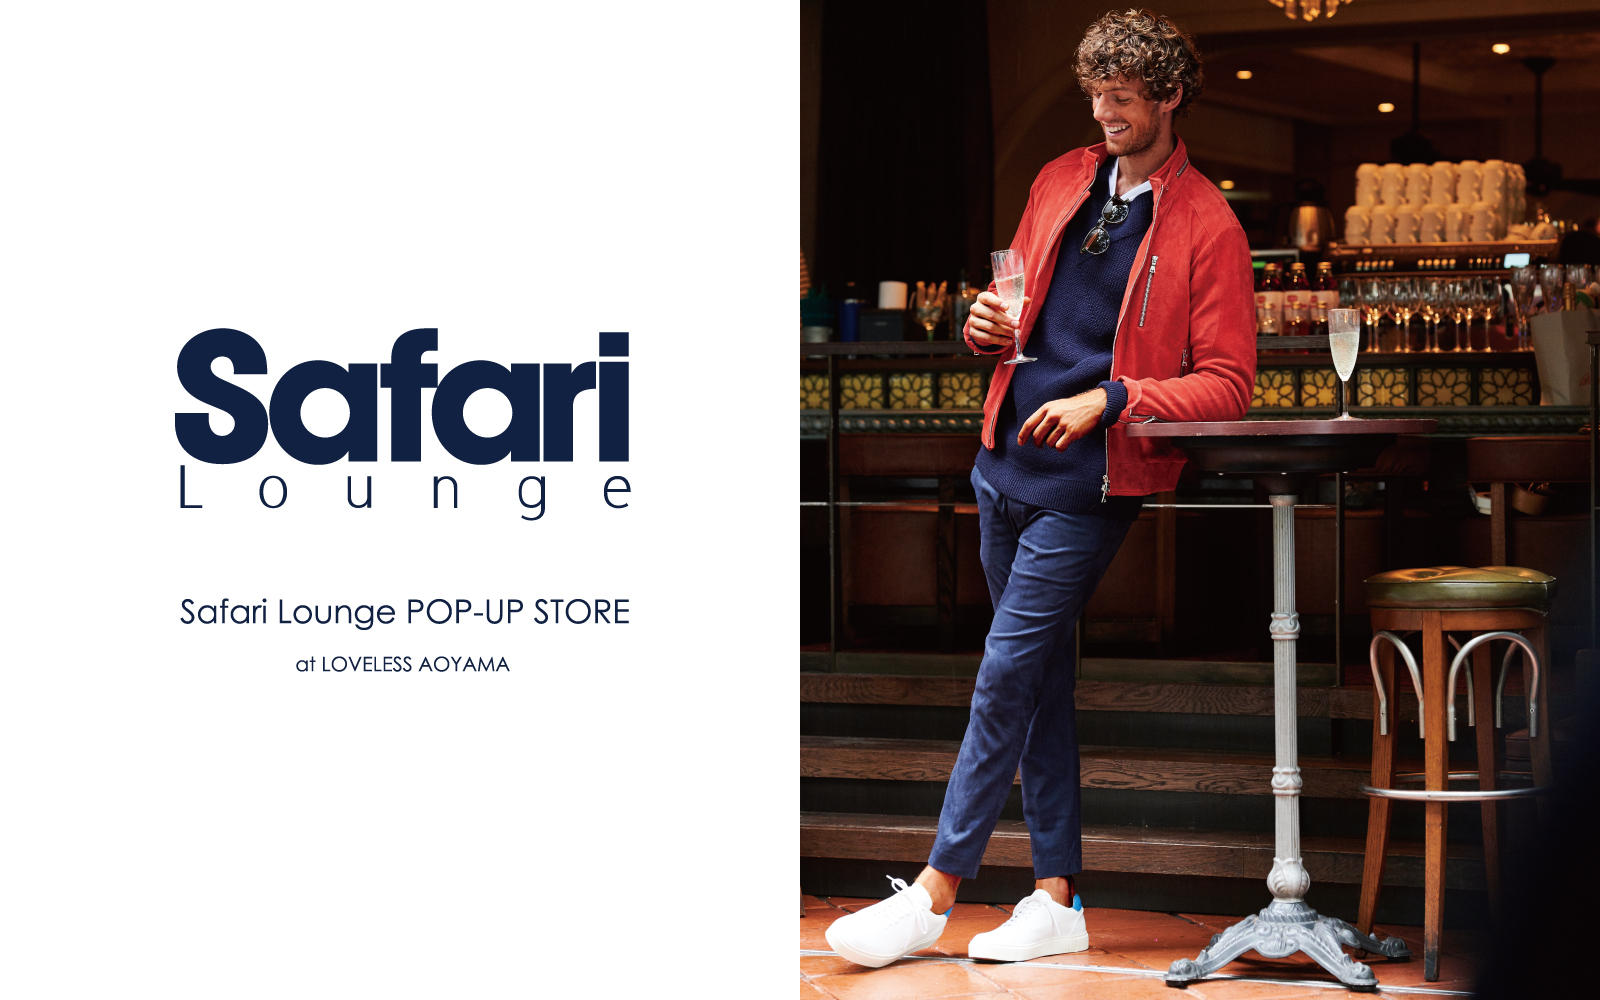 LOVELESS青山店にてSafari Lounge POP-UP STORE開催!